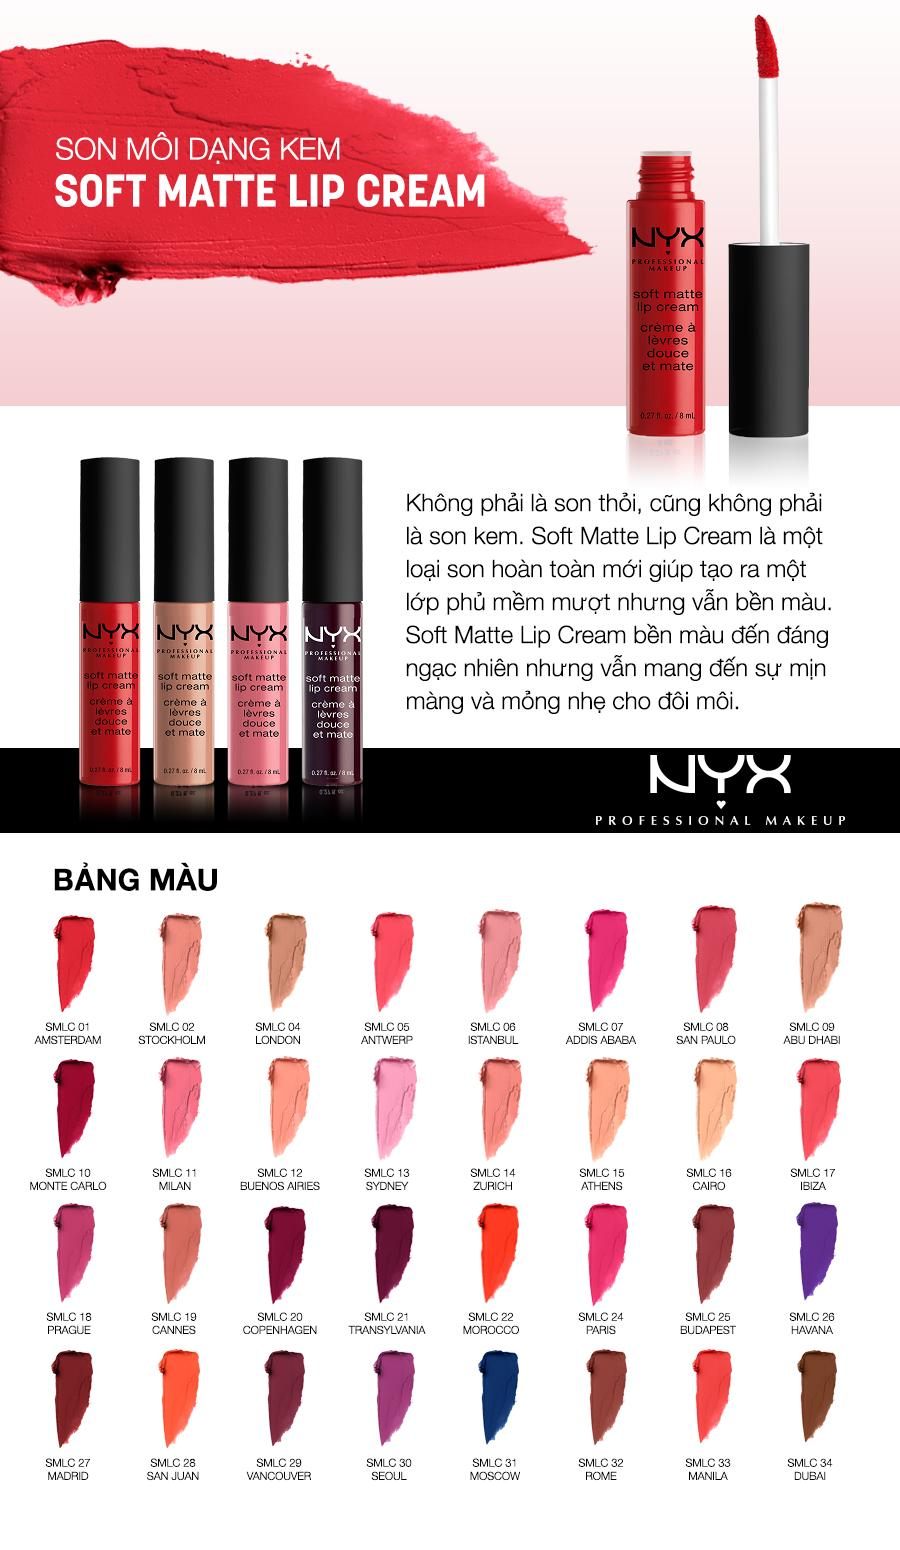 Bộ 2 son kem NYX Professional Makeup Soft Matte Lipcream London & Paris